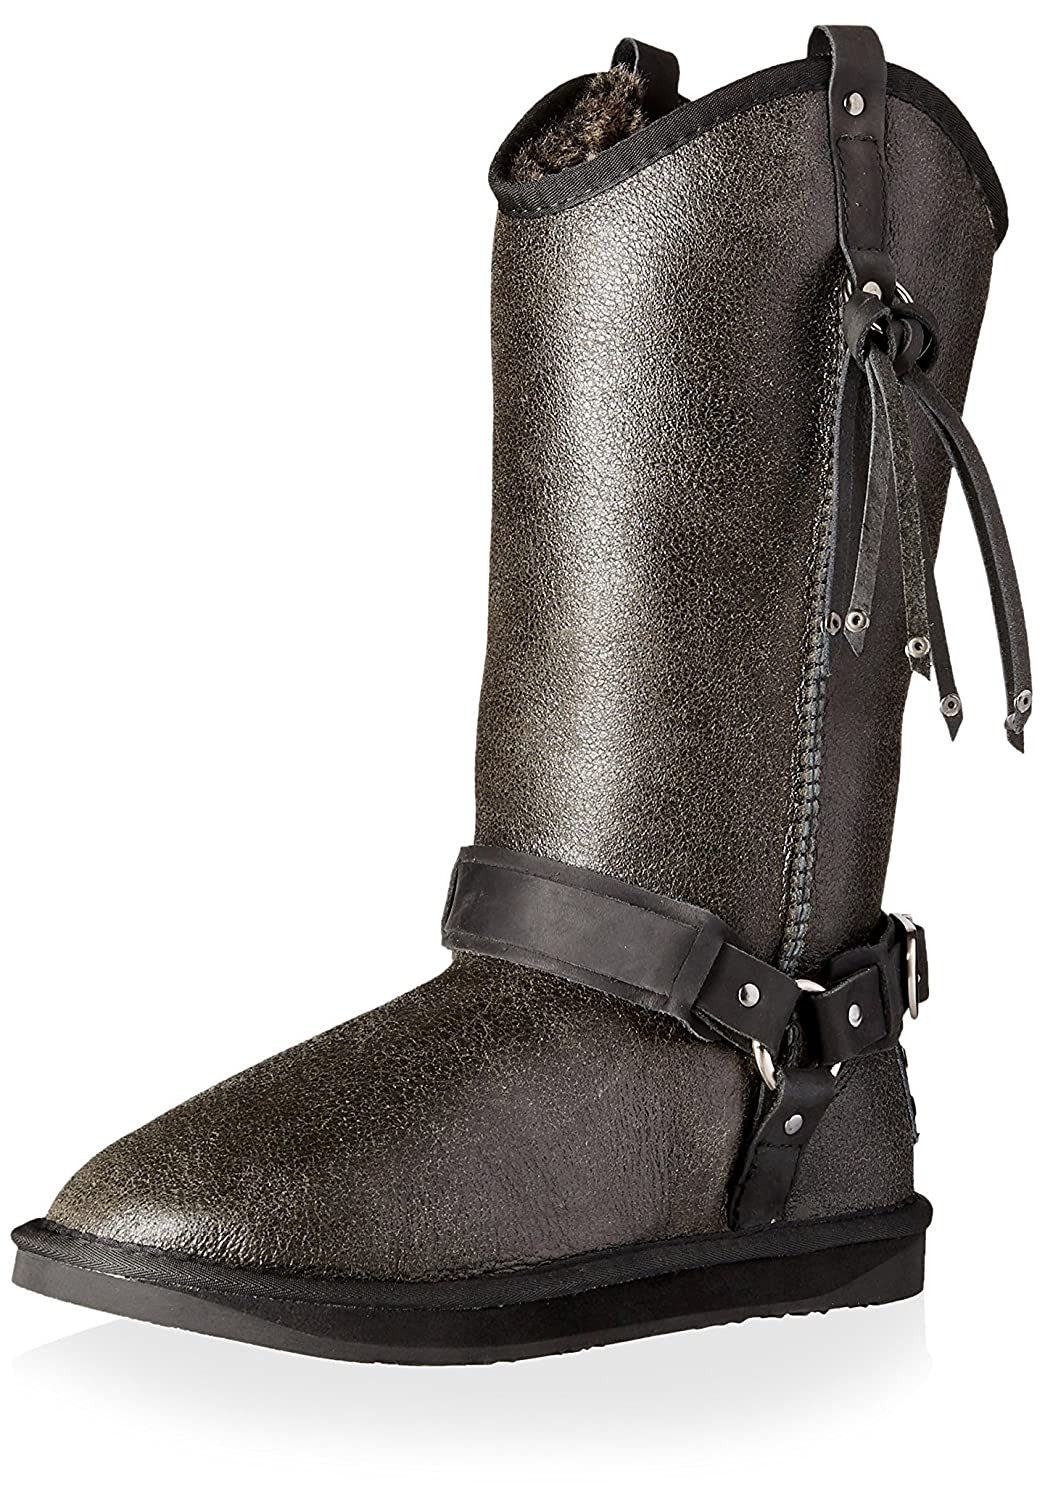 Australia Luxe Collective Women's Long Sheepskin Boot with Harness and Fringe B0114MSURM 39 M EU/8 M US|Distressed Black